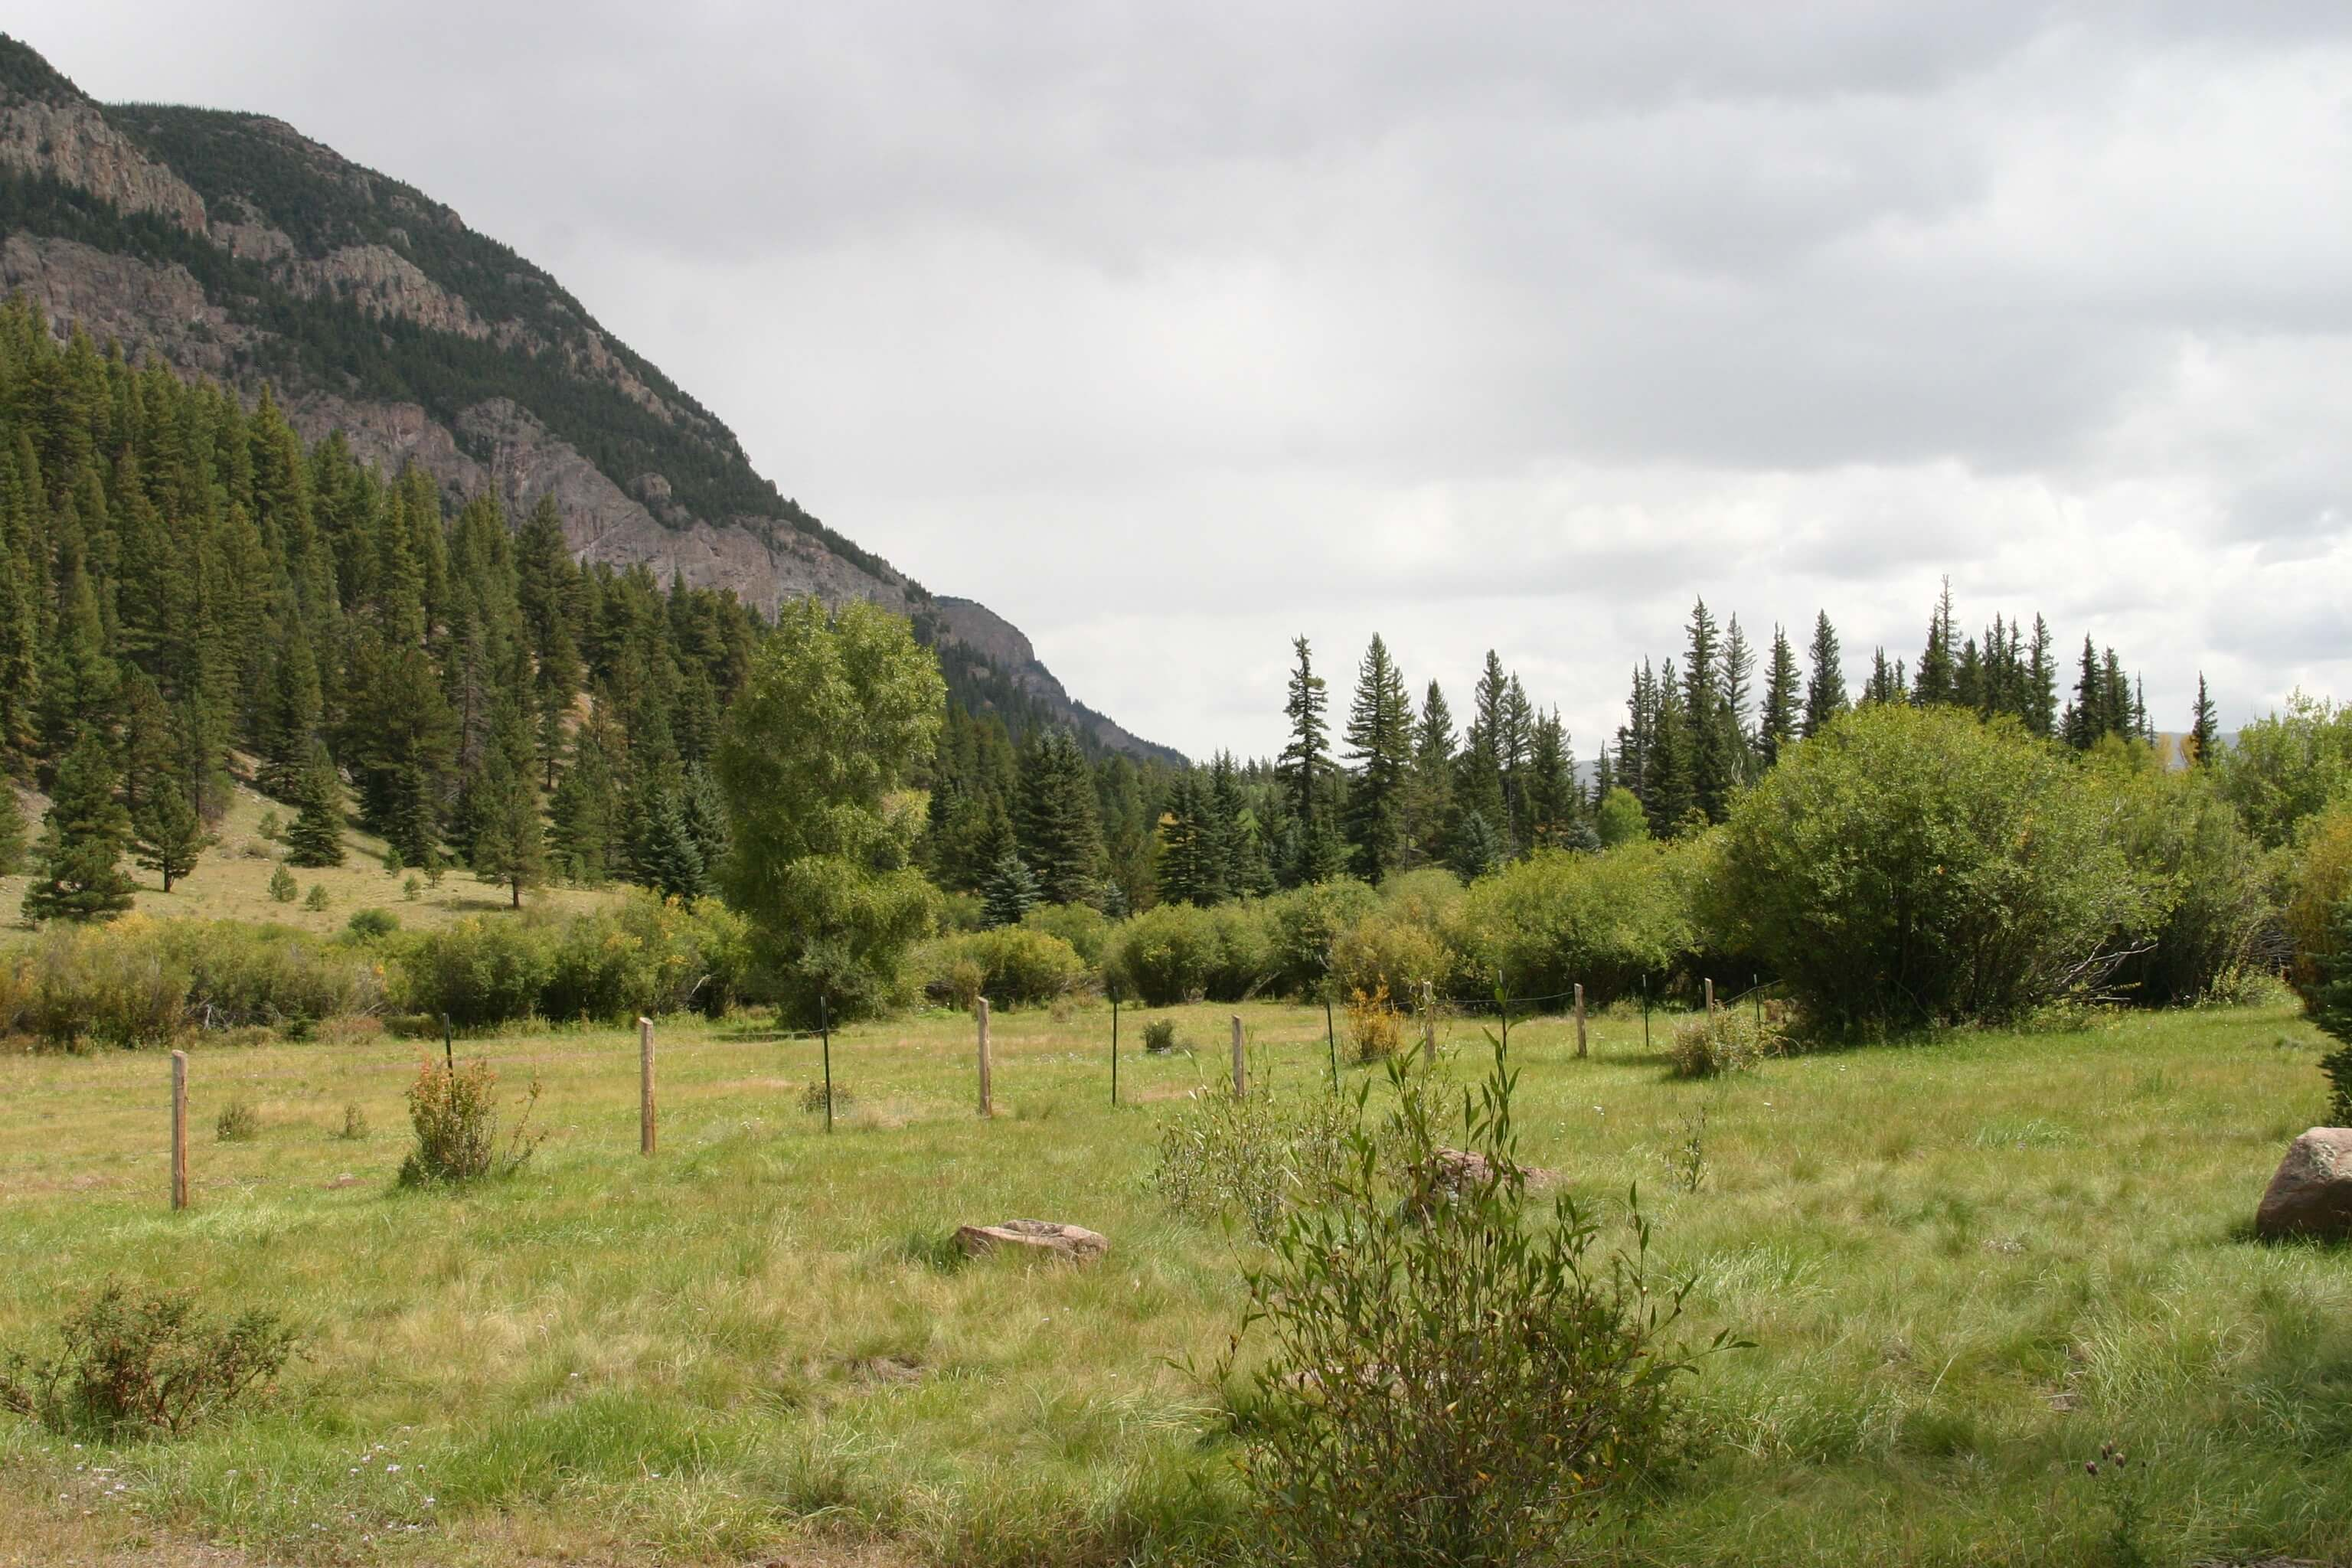 a scenic picture of a meadow and mountains